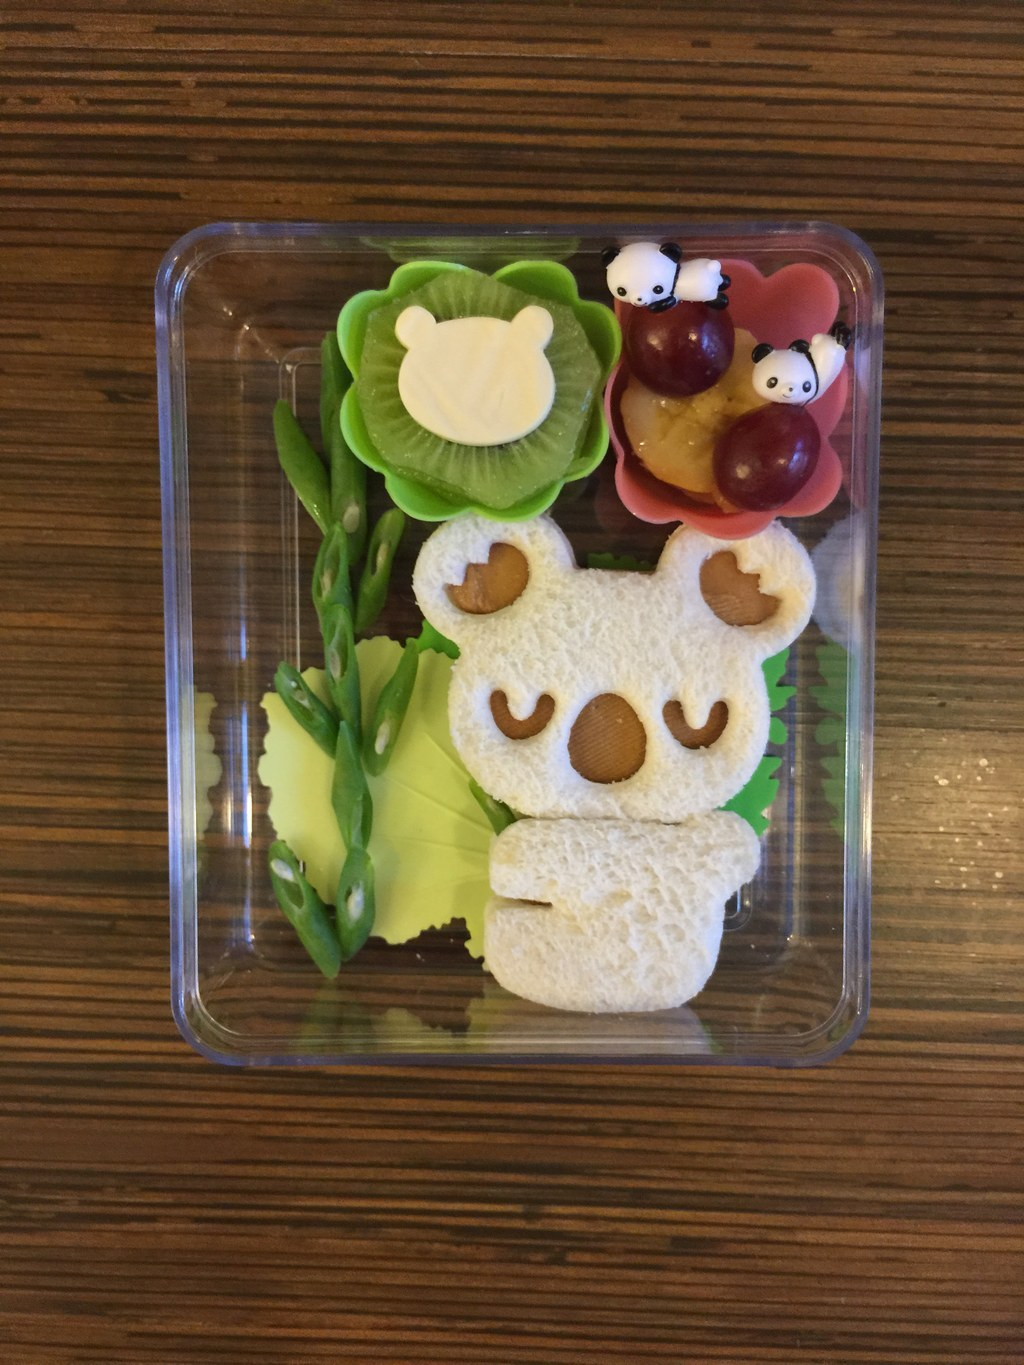 These Incredible Lunches Are So Artistic You Won't Want To Eat Them